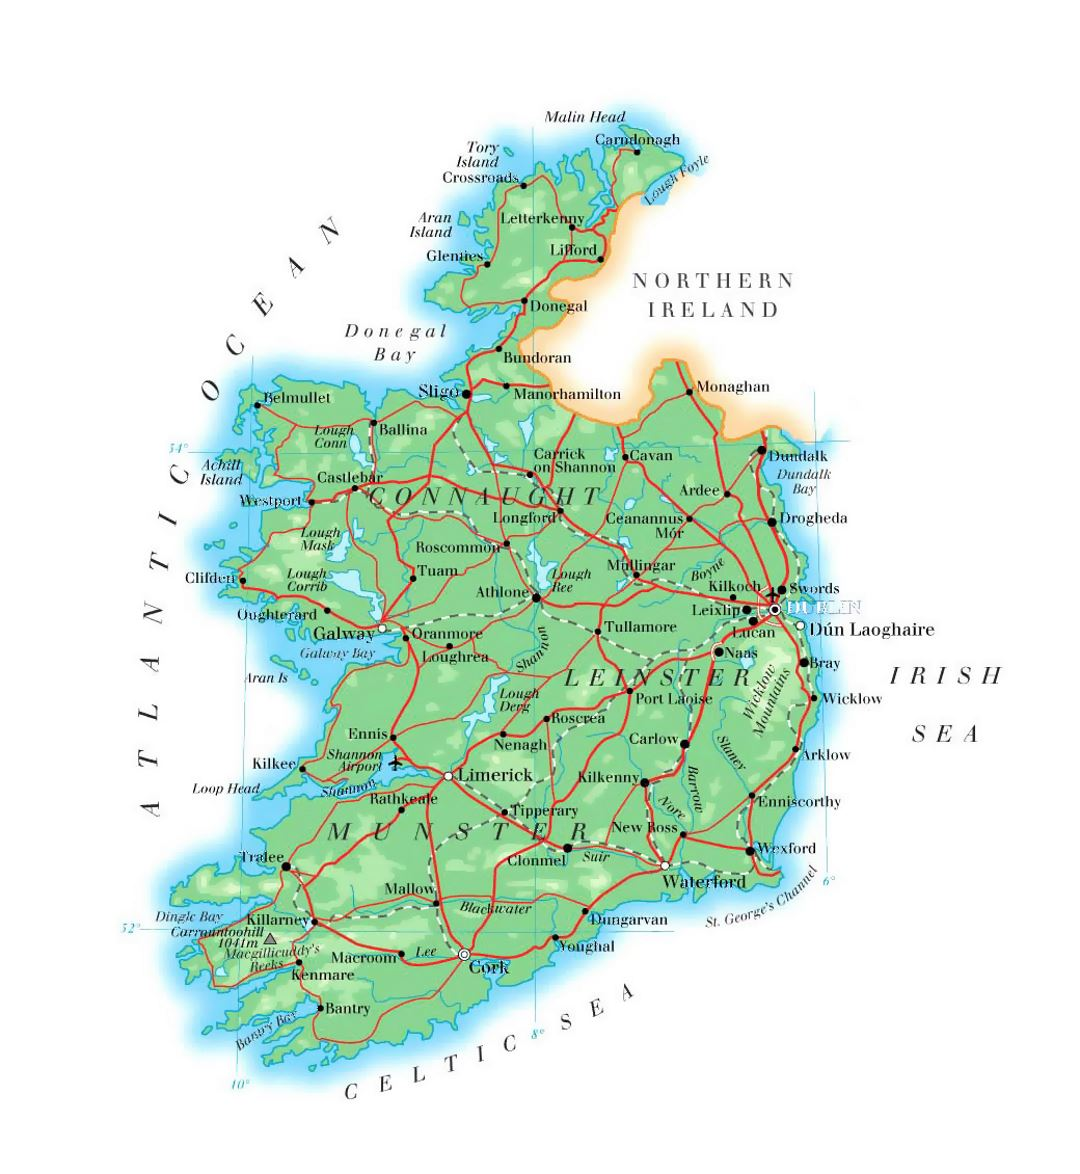 Map Of Ireland Showing Athlone.Detailed Elevation Map Of Ireland With Roads Cities And Airports